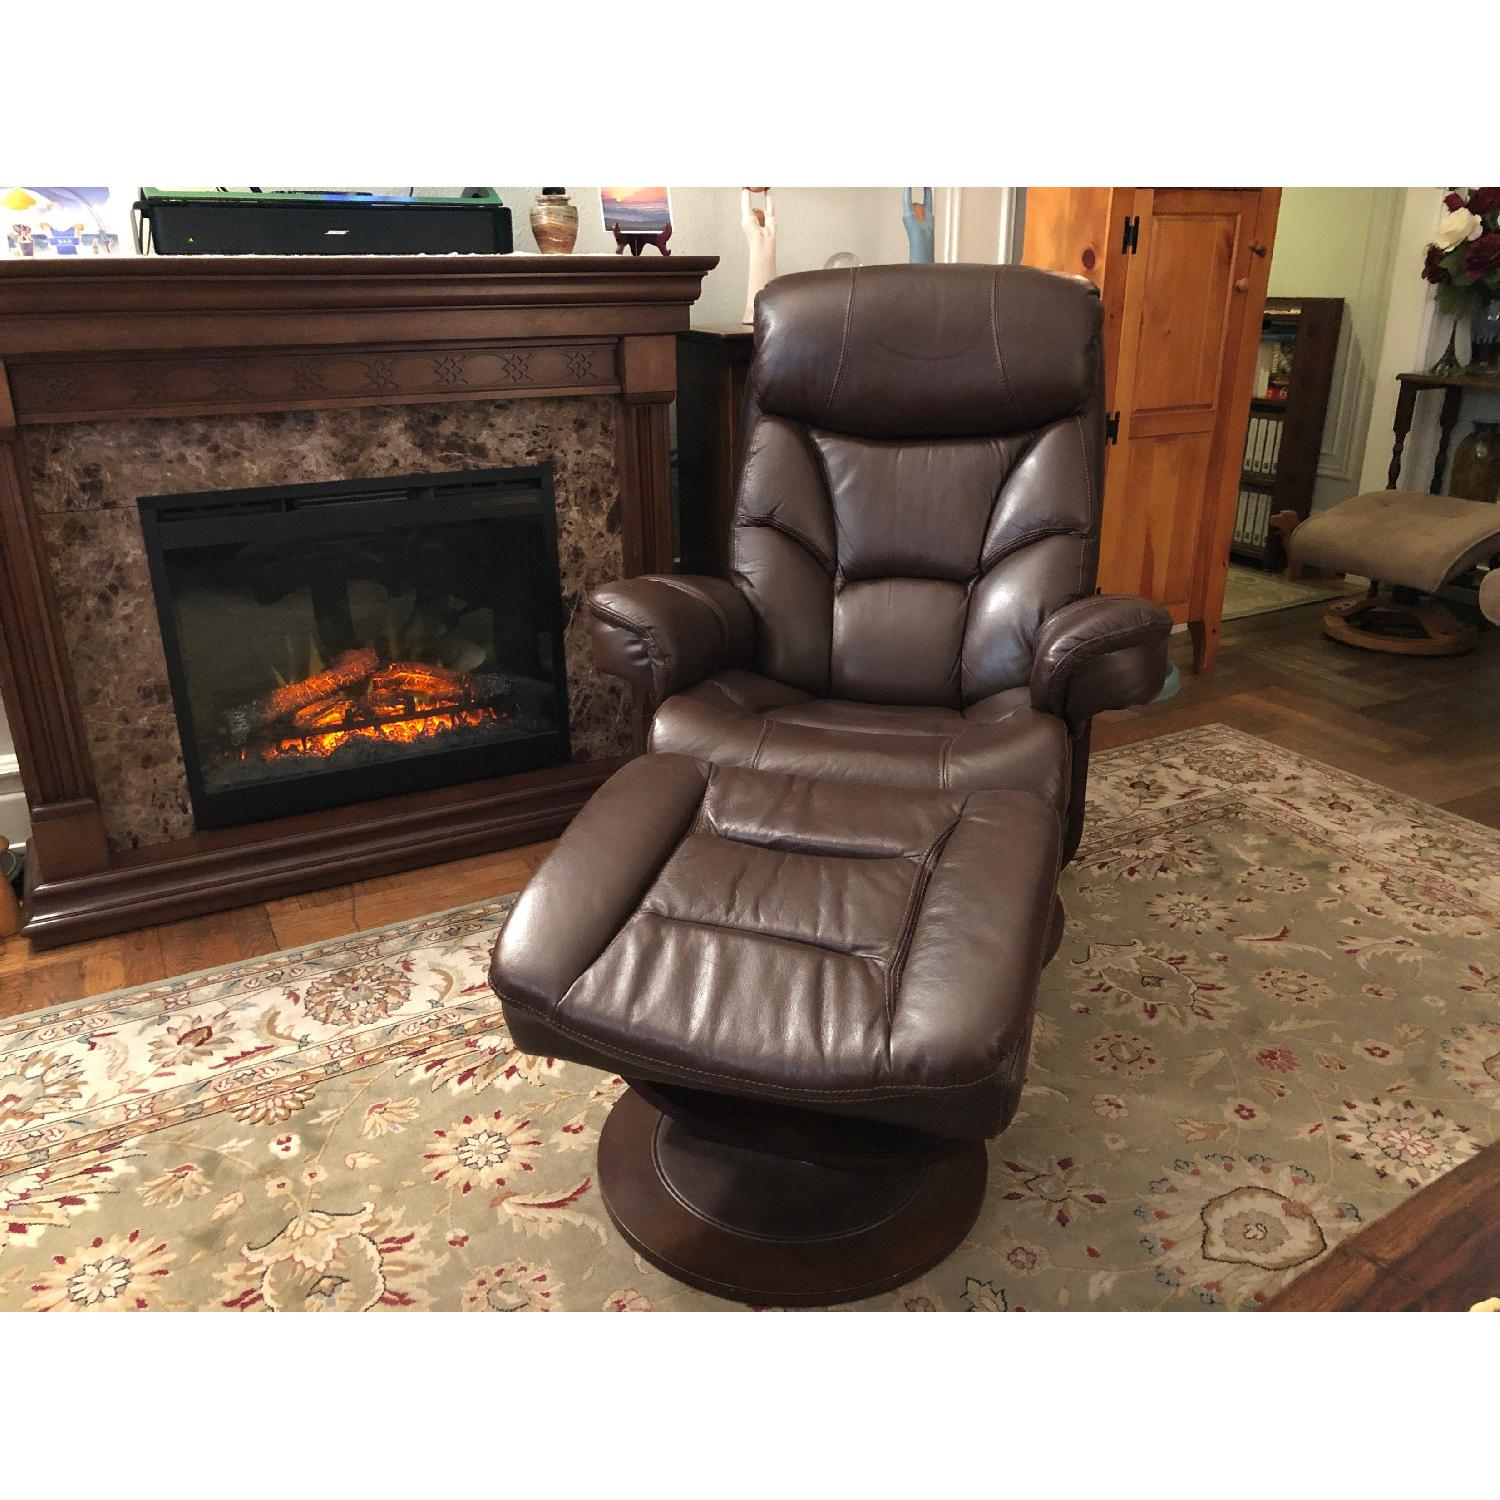 Macy's Leather Euro Chair & Ottoman - image-1